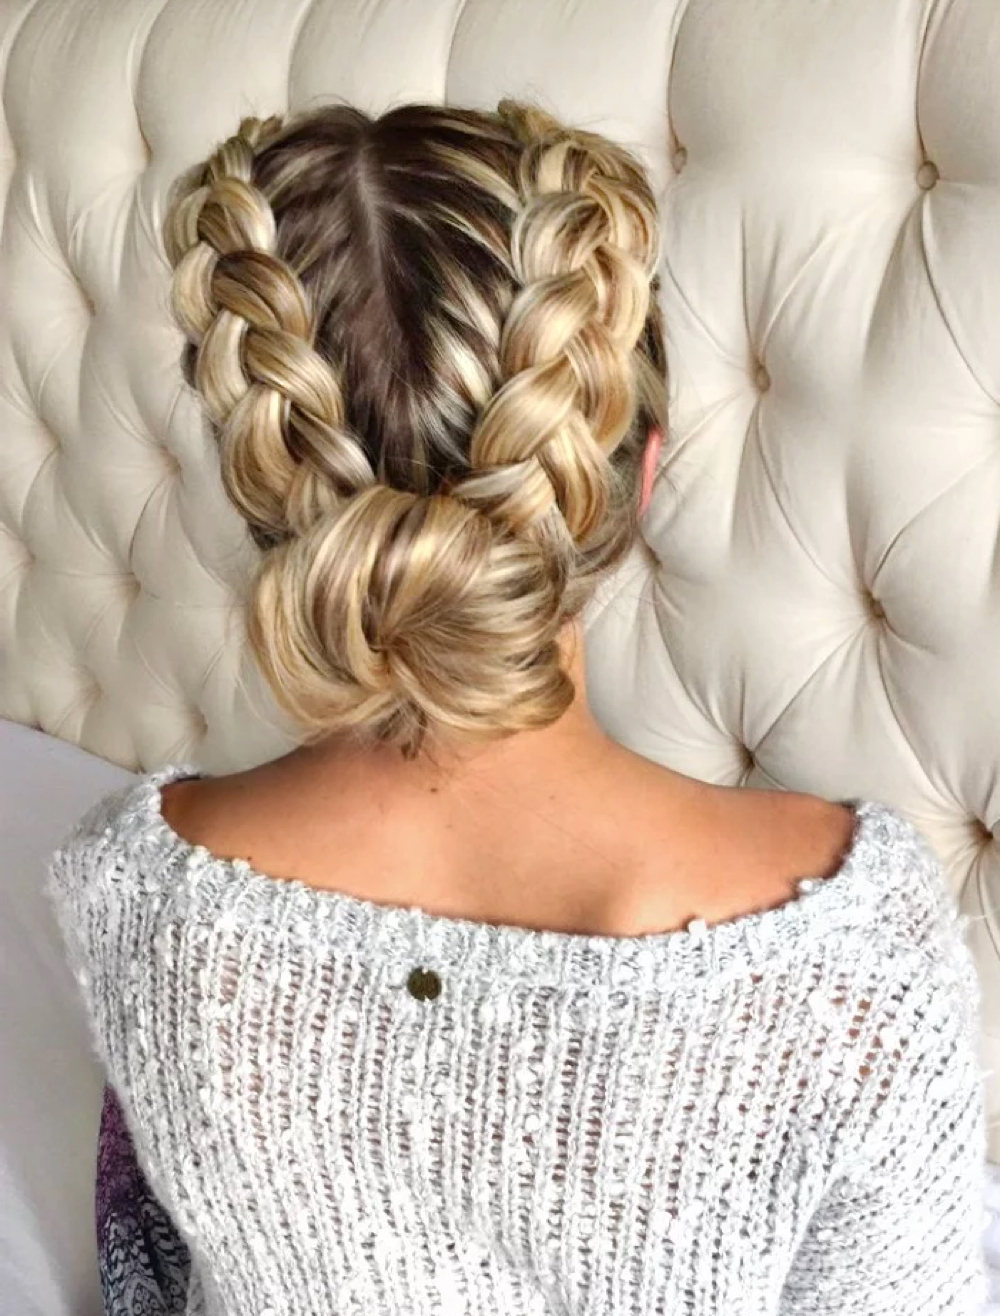 29 Gorgeous Braided Updo Ideas For 2019 Throughout Widely Used Chic Waterfall Braid Prom Updos (View 5 of 20)